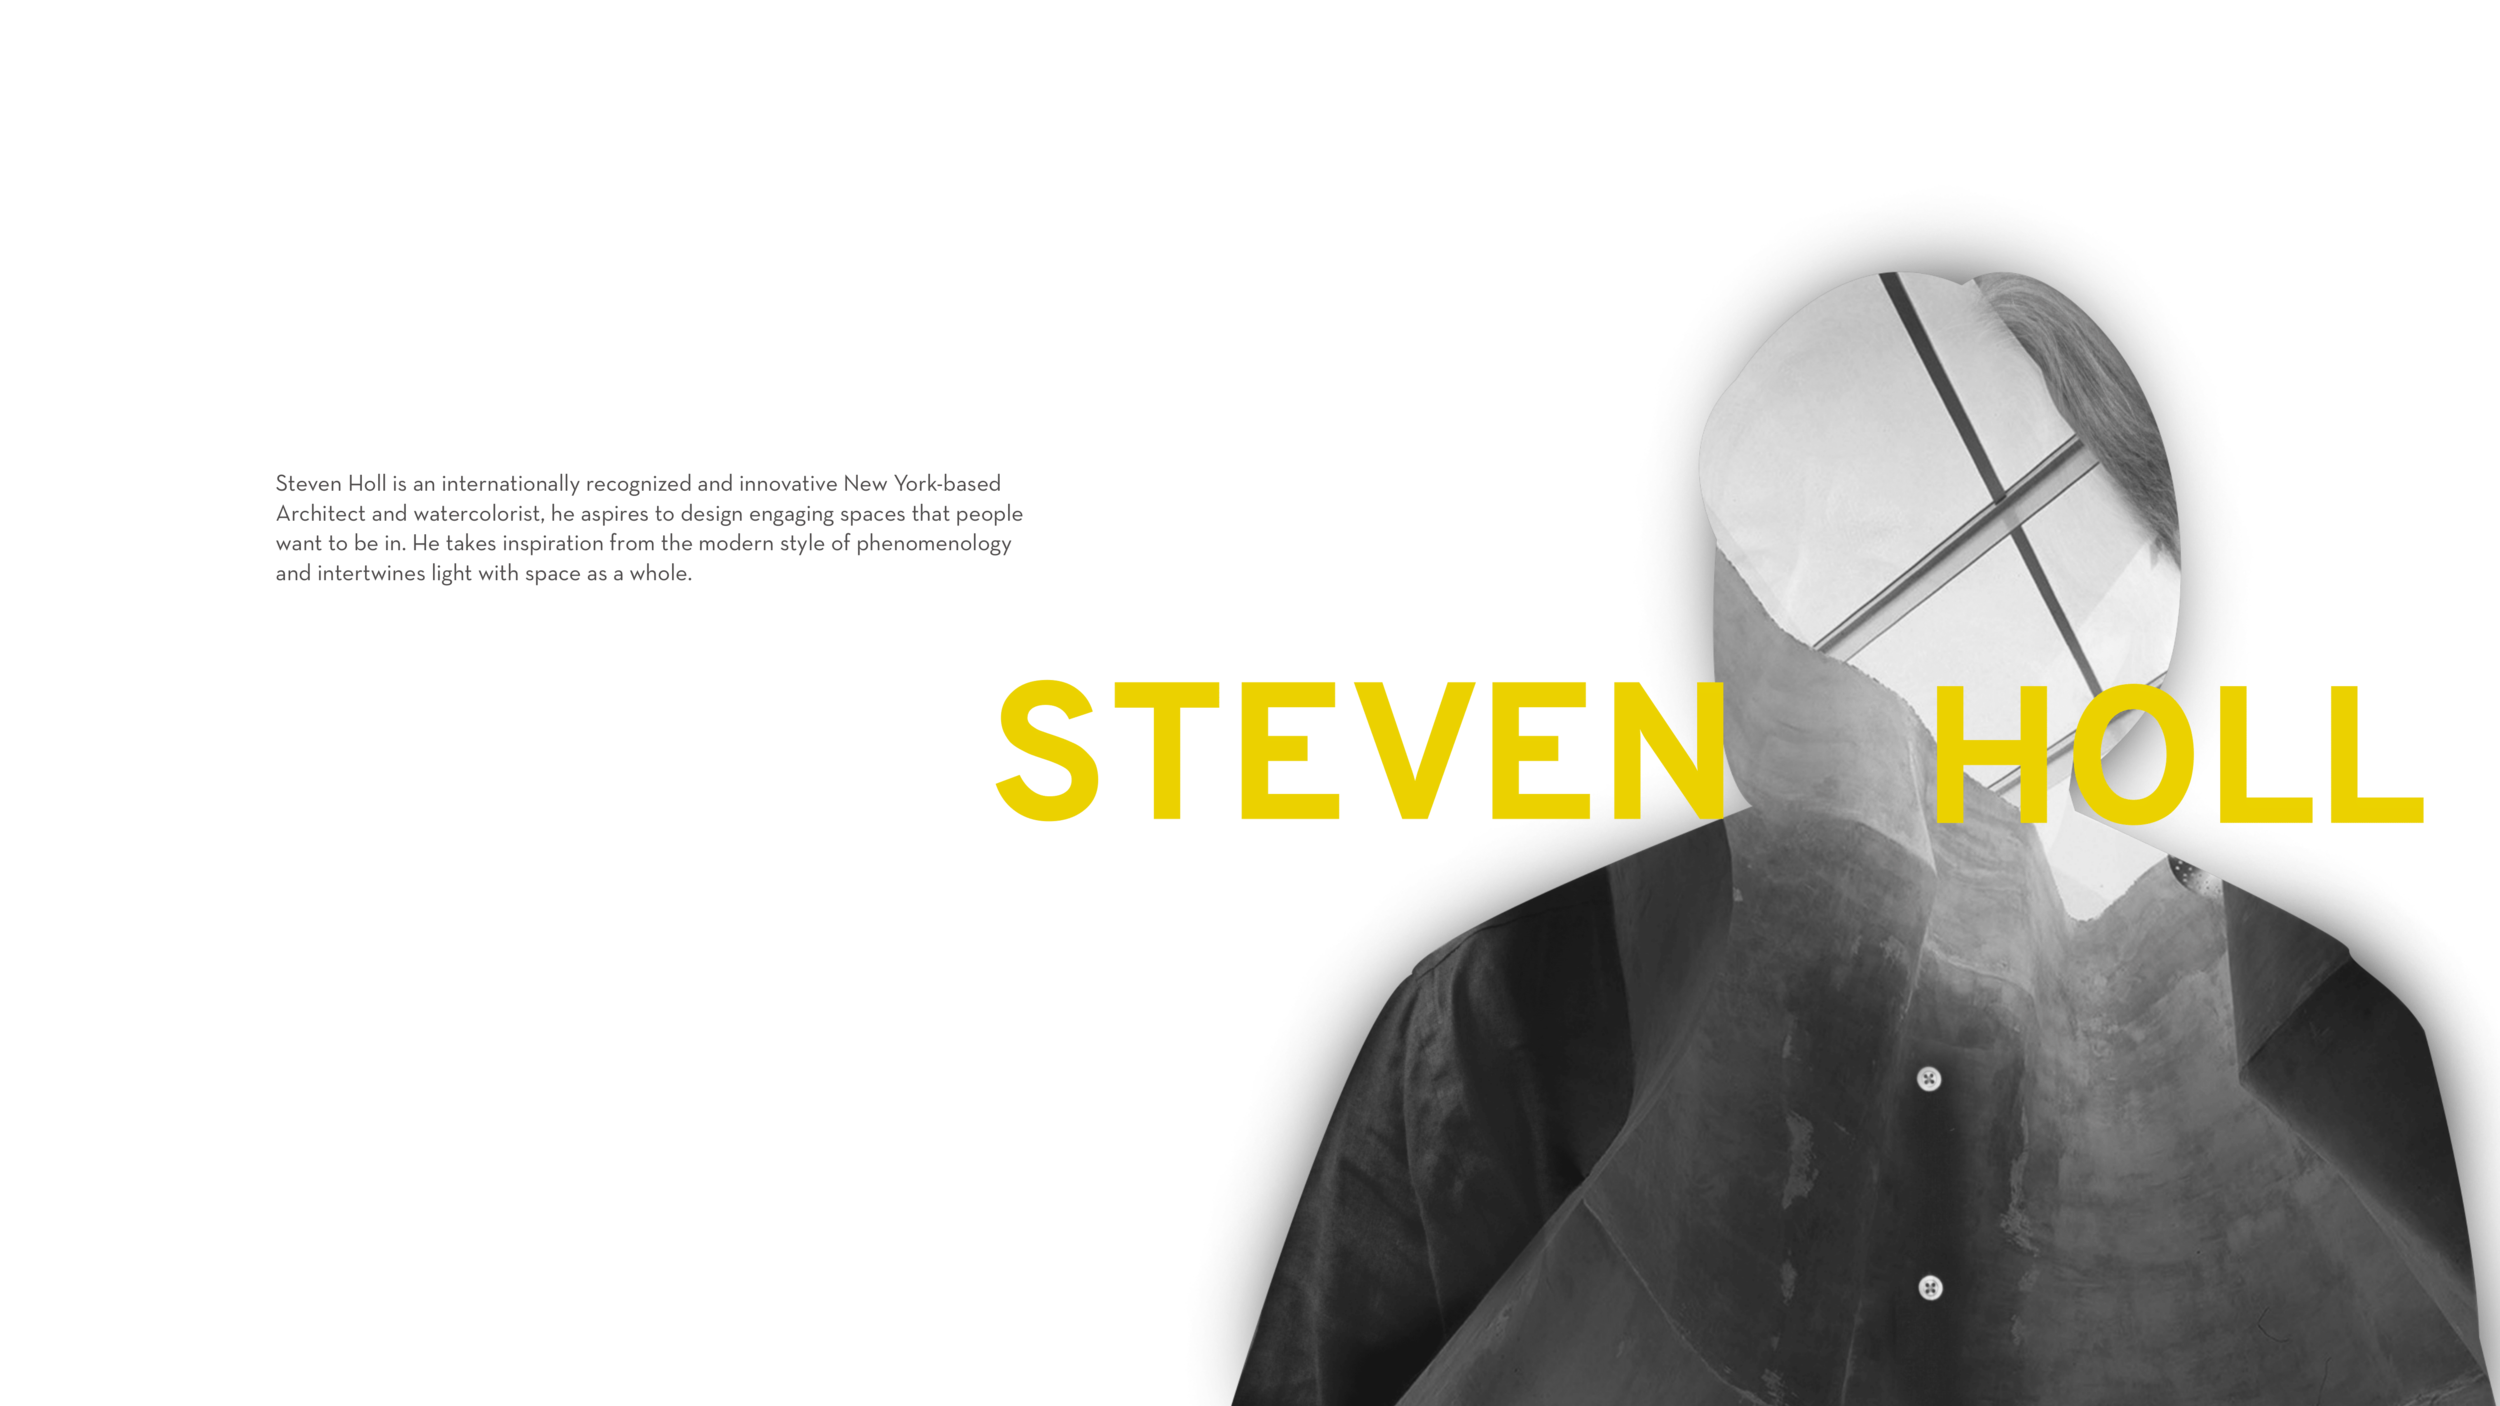 keeping it mysterious - Some small technique that I used in the slide deck will increase the curiosity from the audiences. In this slide, I use the image of Steven Holl as an outline , then mask it with his architecture and put his name on top of the image.